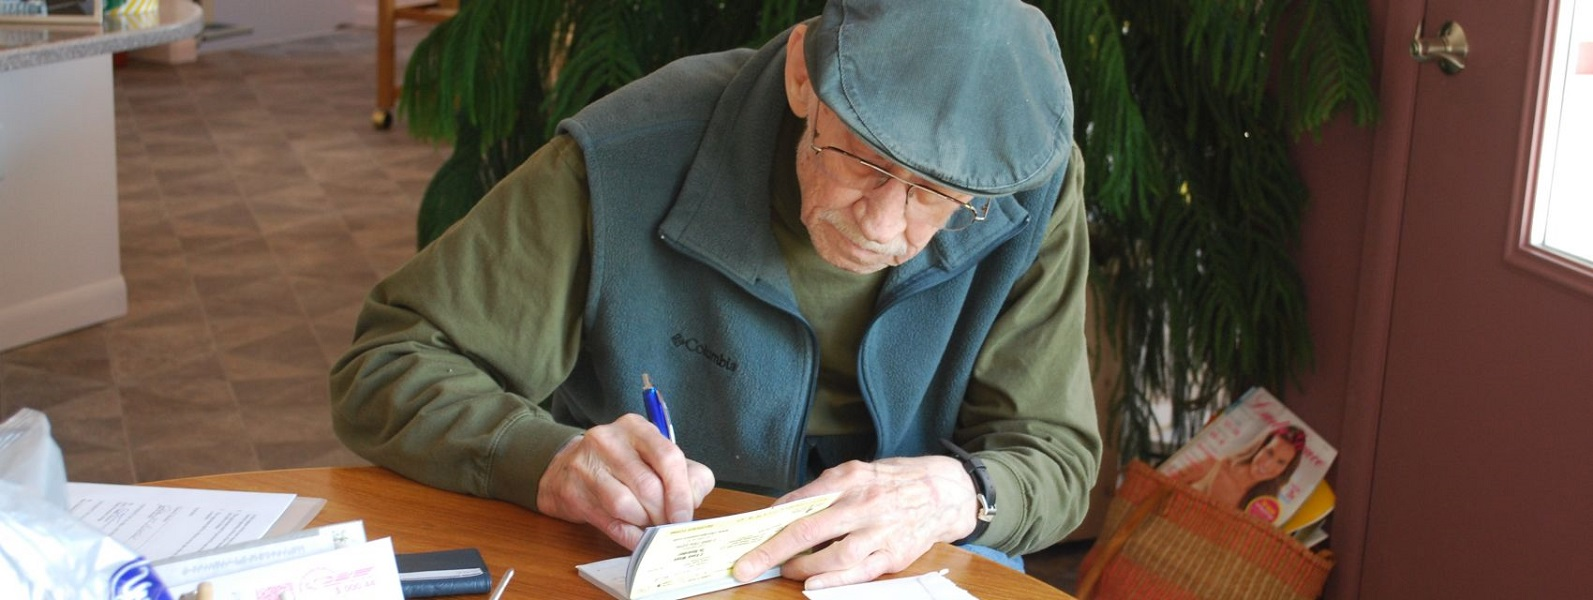 This is an image of Clayton Brockel, KPC's founding director, writing a check to provide for a donation to student scholarship endowments his family supported.